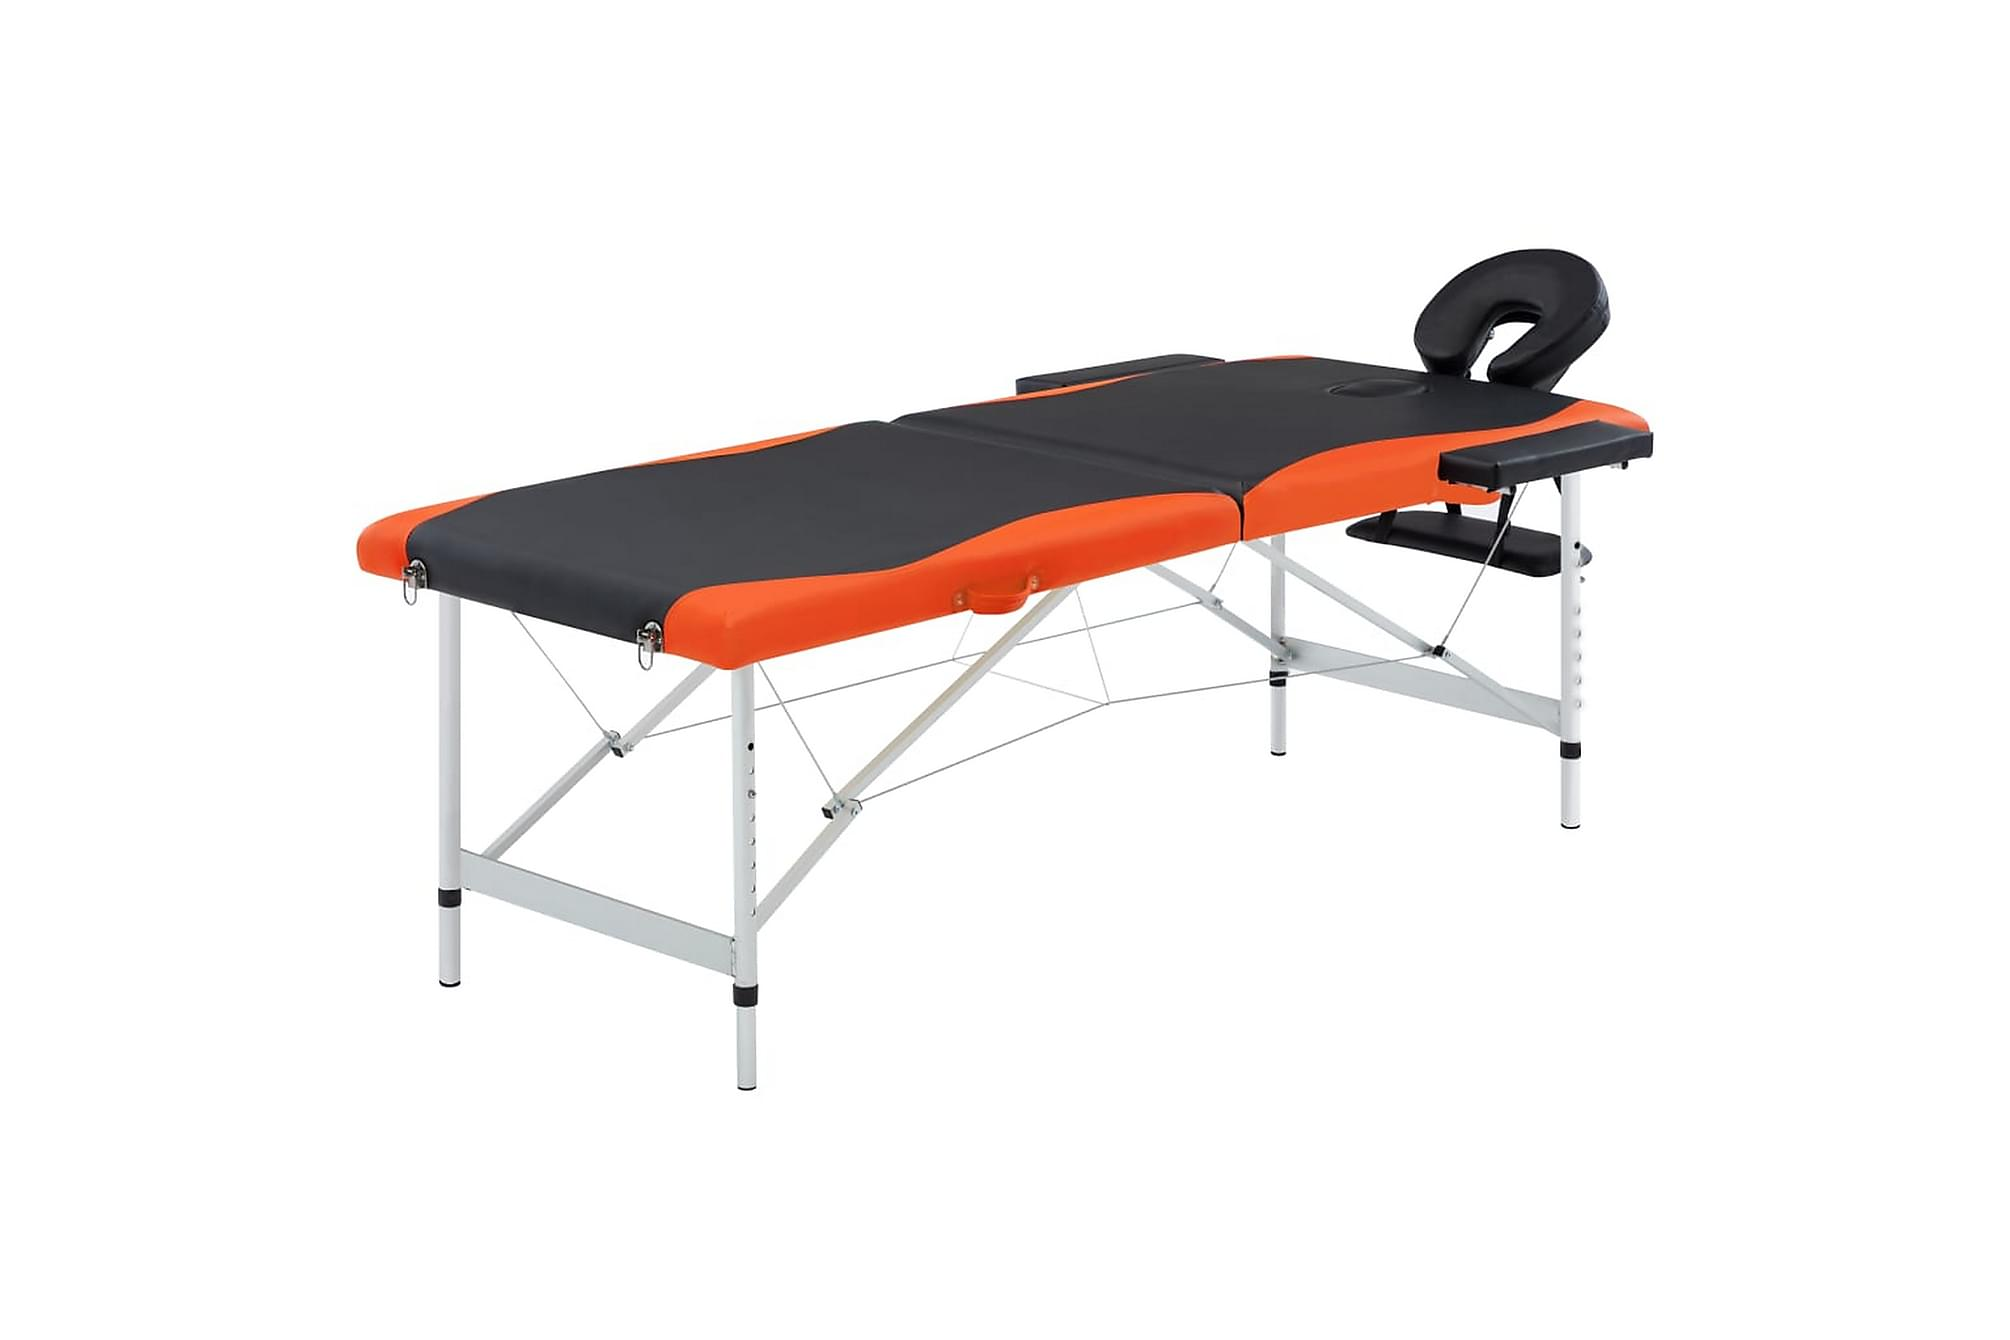 Hopfällbar massagebänk 2 sektioner aluminium svart & orange, Massagebord